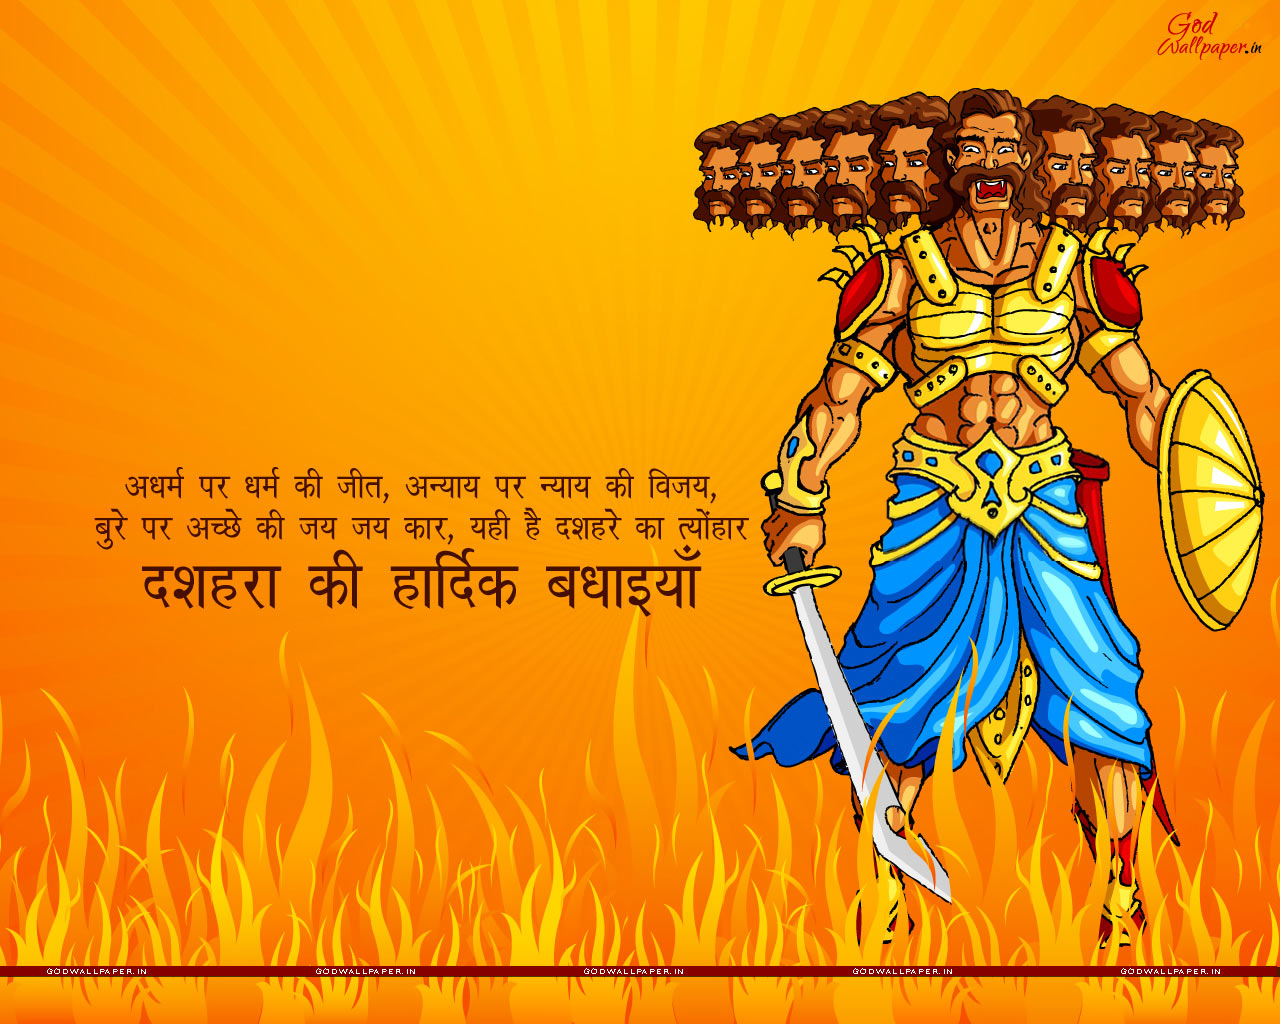 happy dussehra wallpapers for desktop download hindu god wallpapers